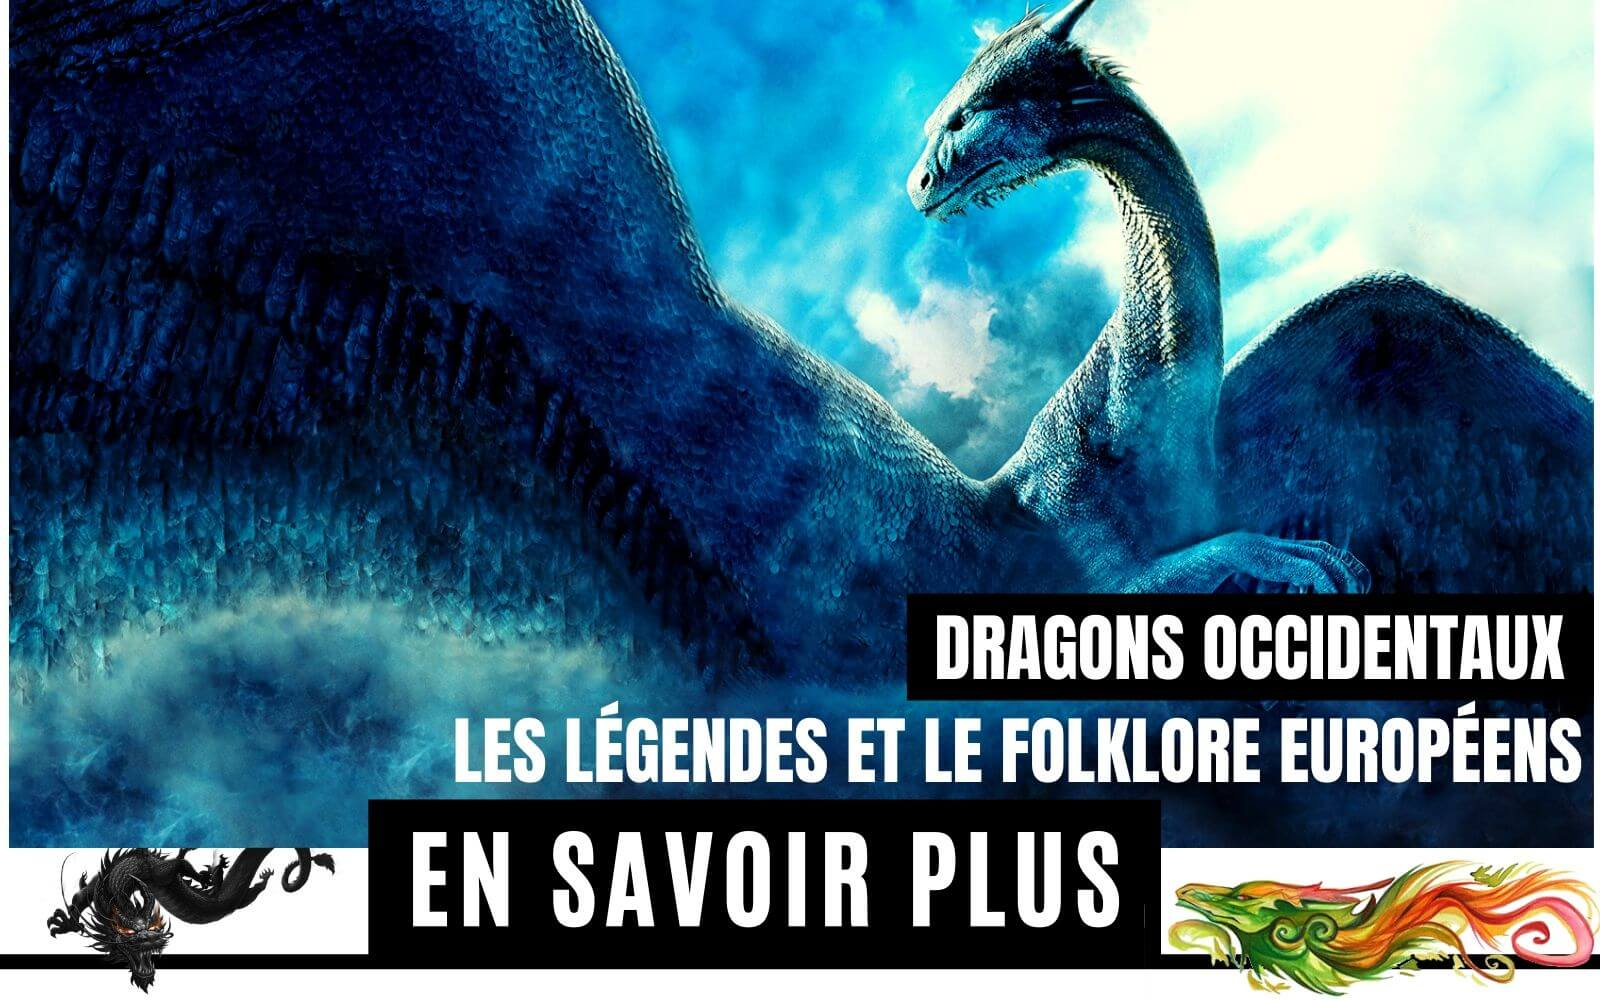 Dragons-occidentaux